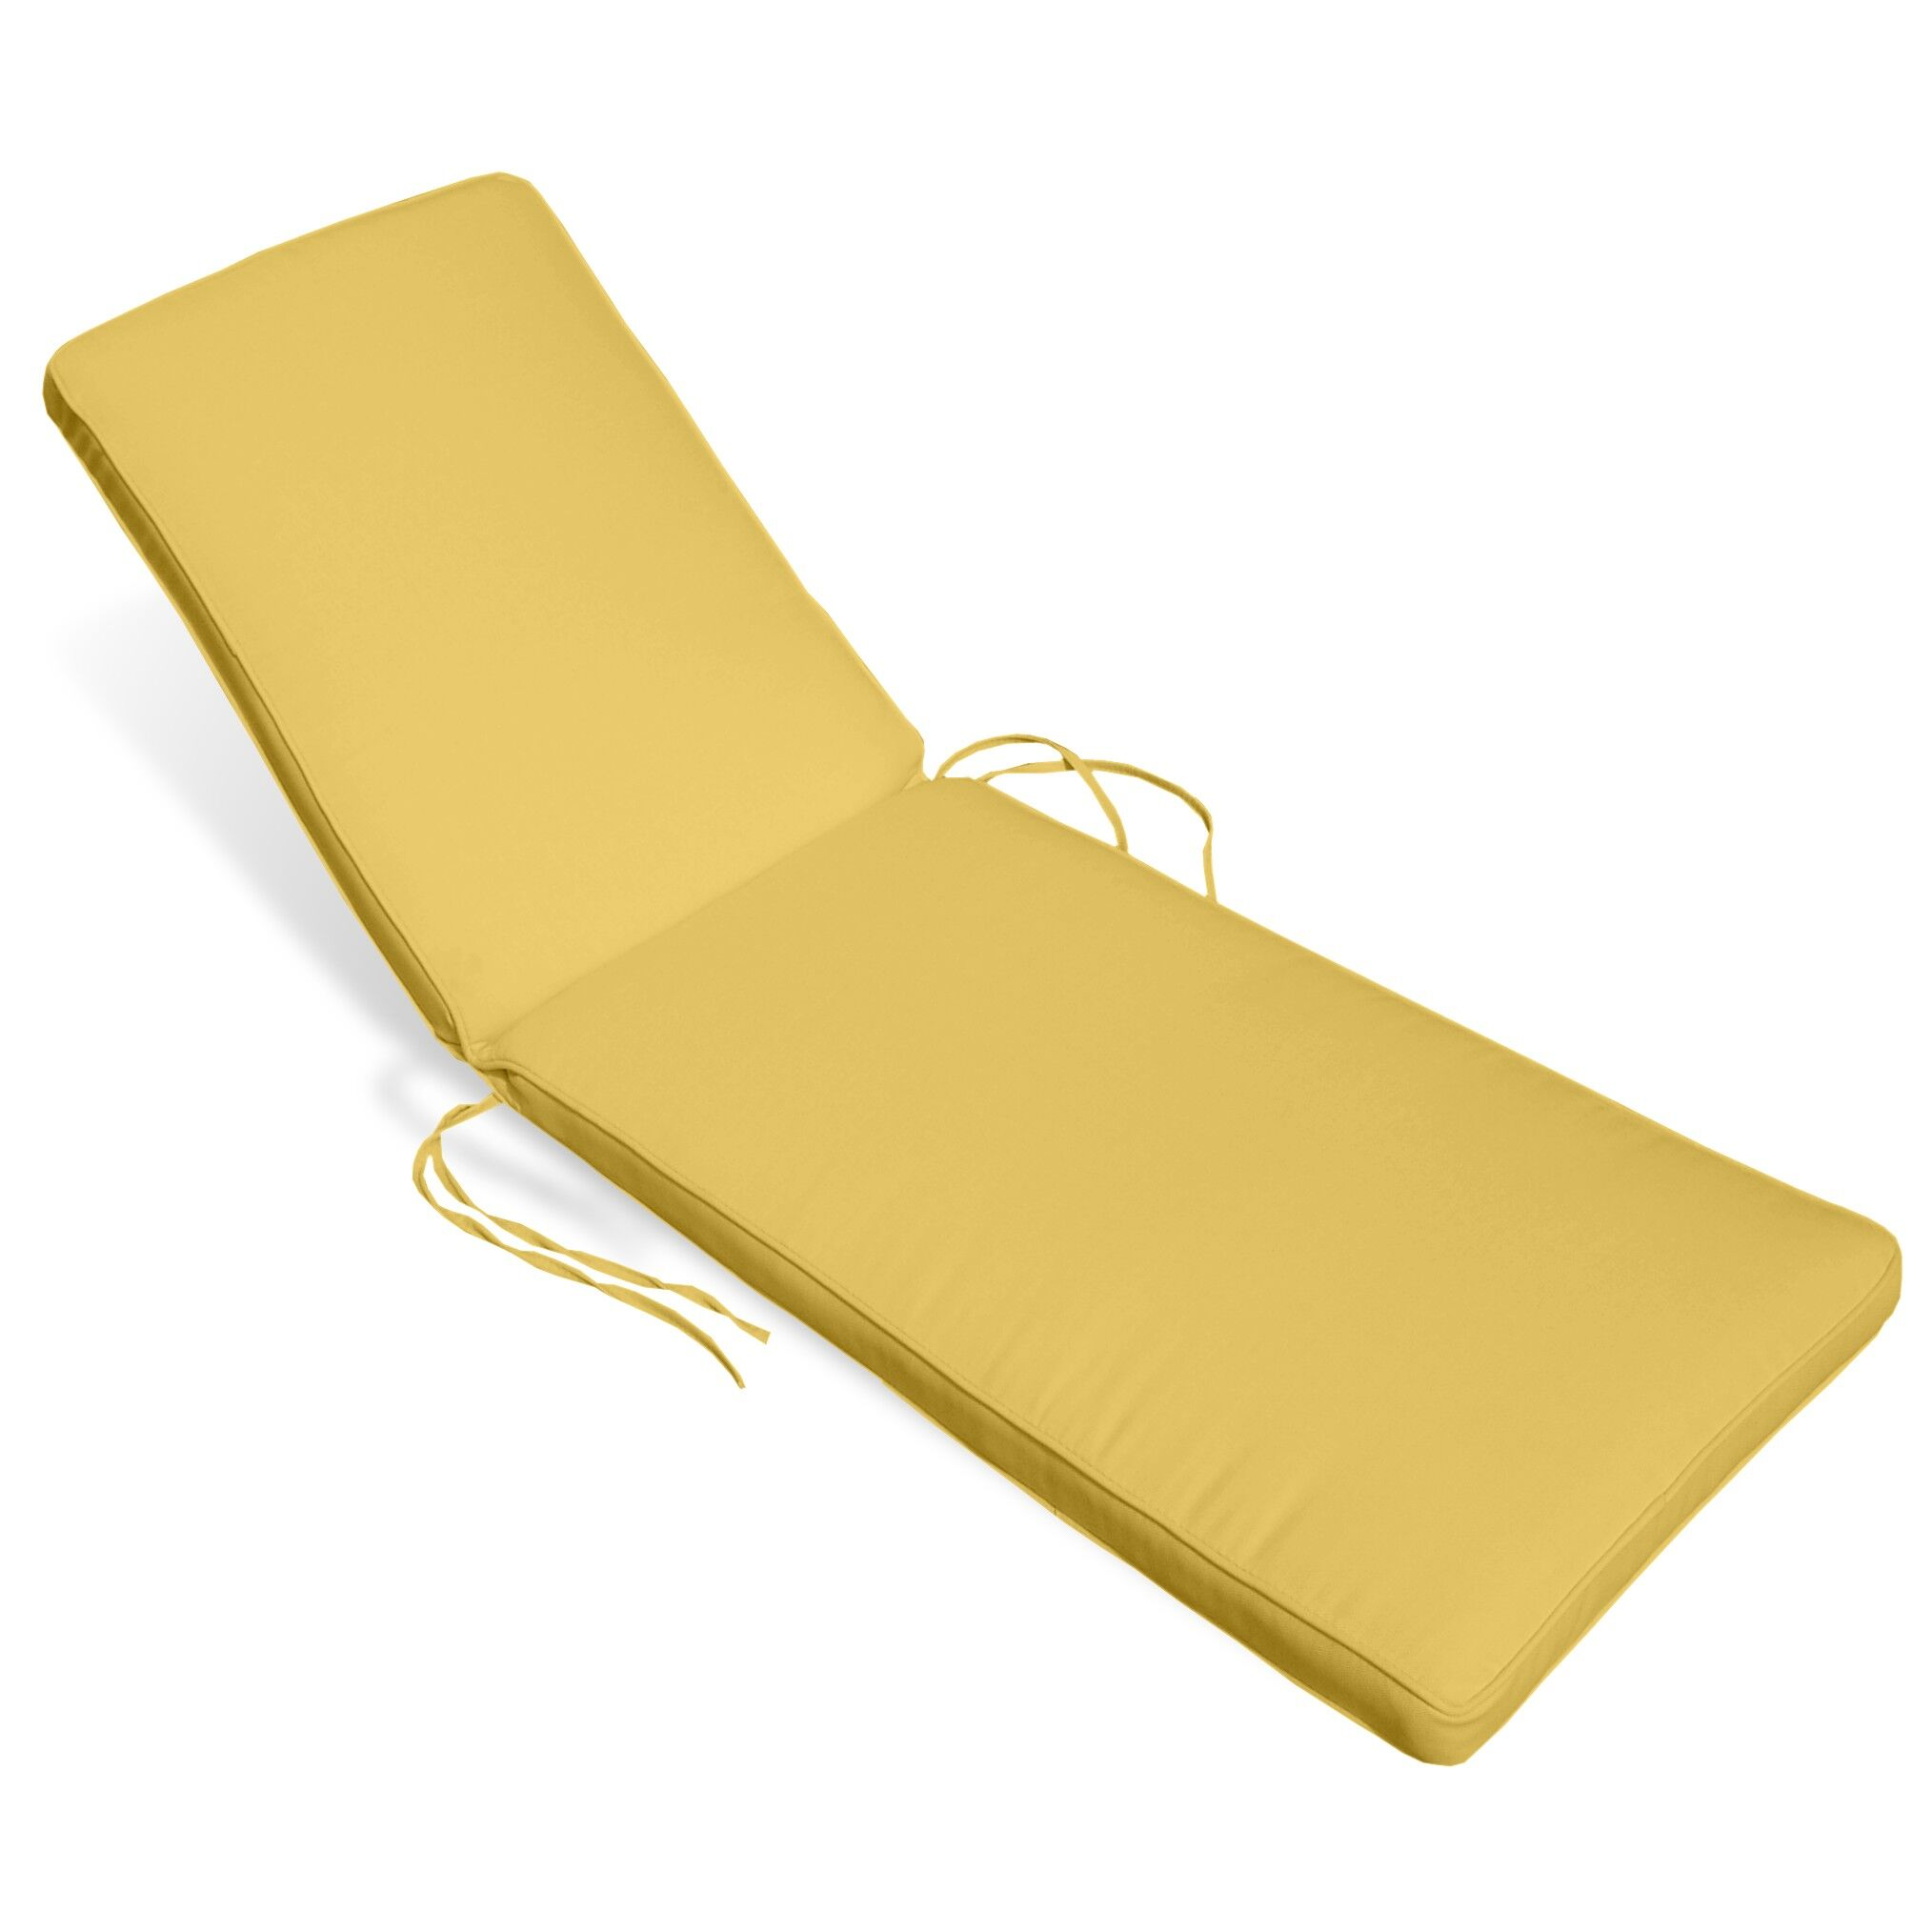 Snake River Indoor/Outdoor Sunbrella Chaise Lounge Cushion Fabric: Buttercup